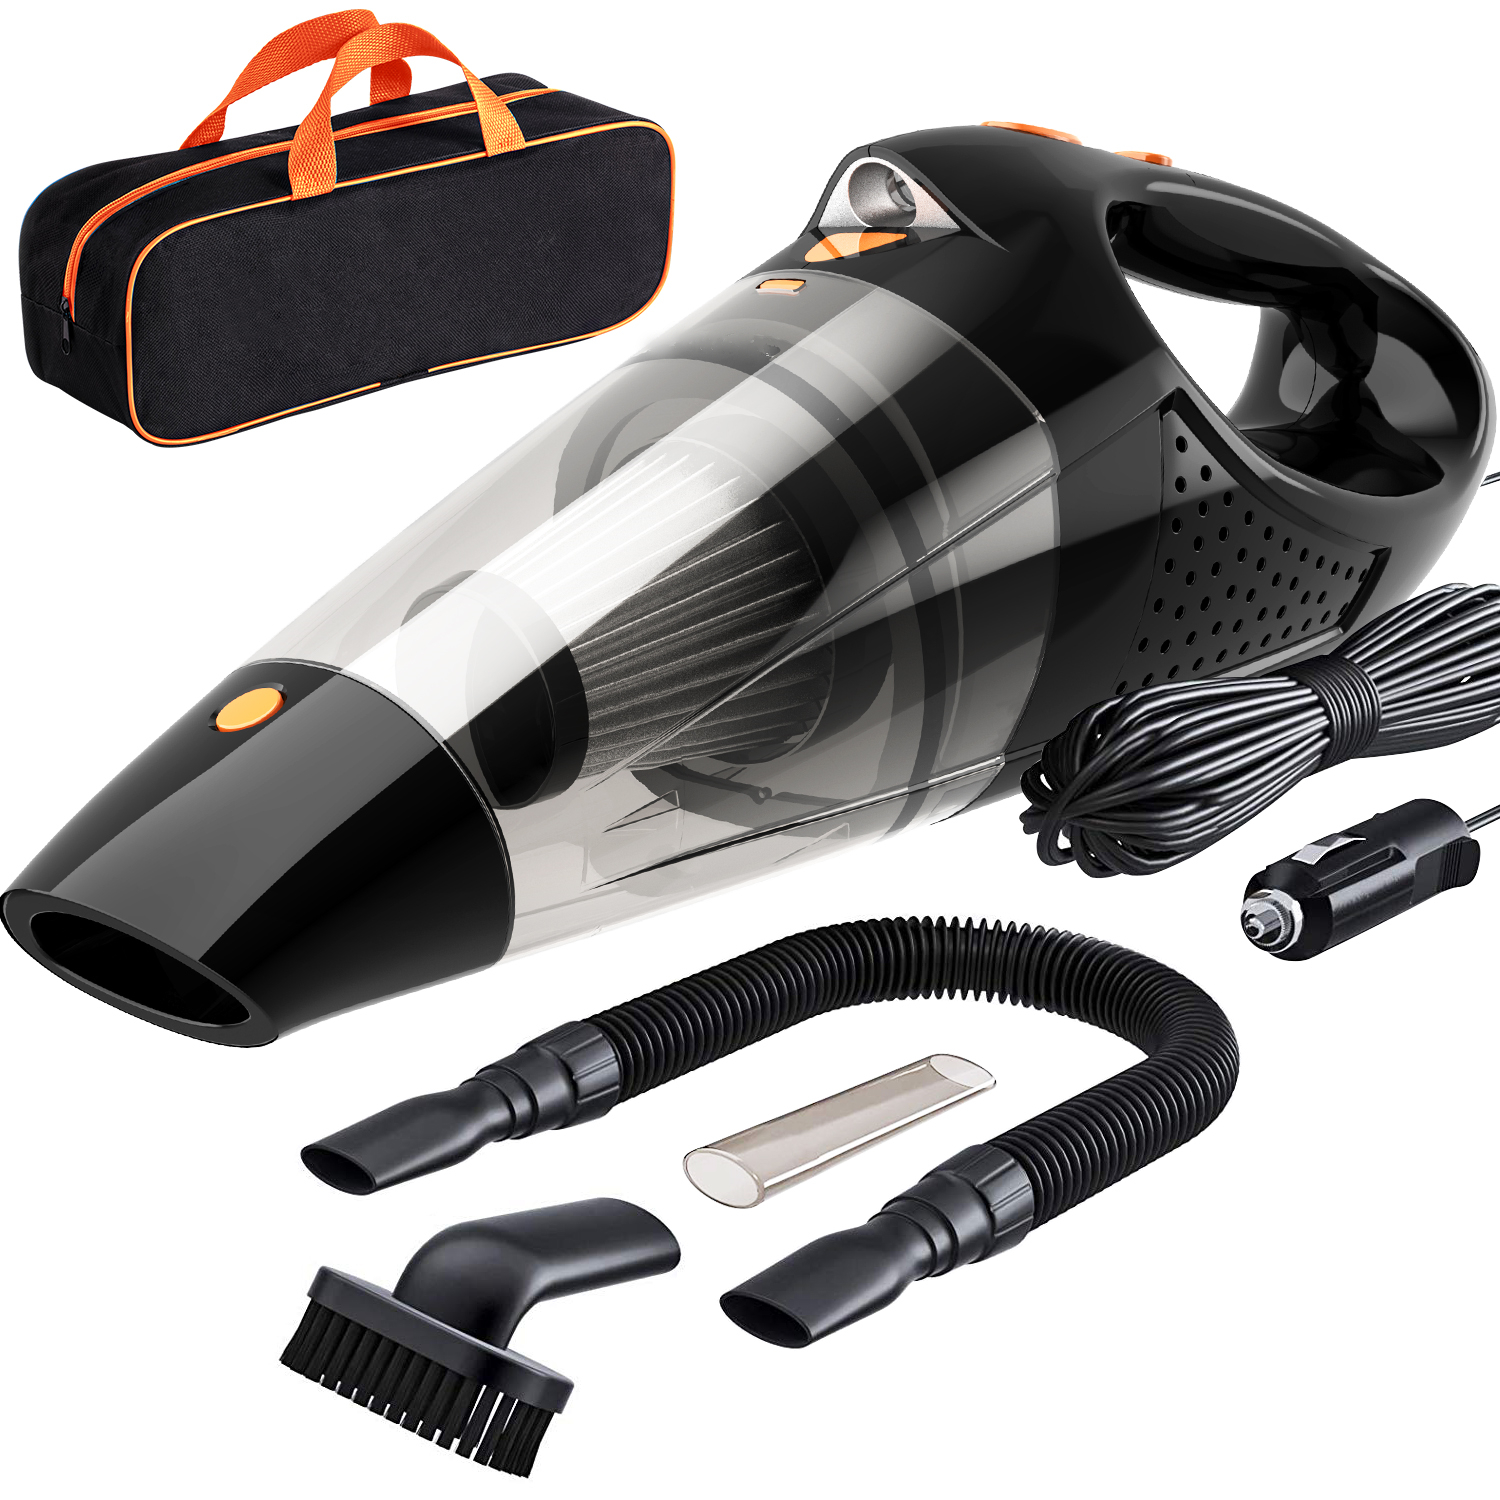 LATEST VERSION Car Vacuum Cleaner DC 12 Volt Wet Dry Auto Vacuum Cleaner With storage bag